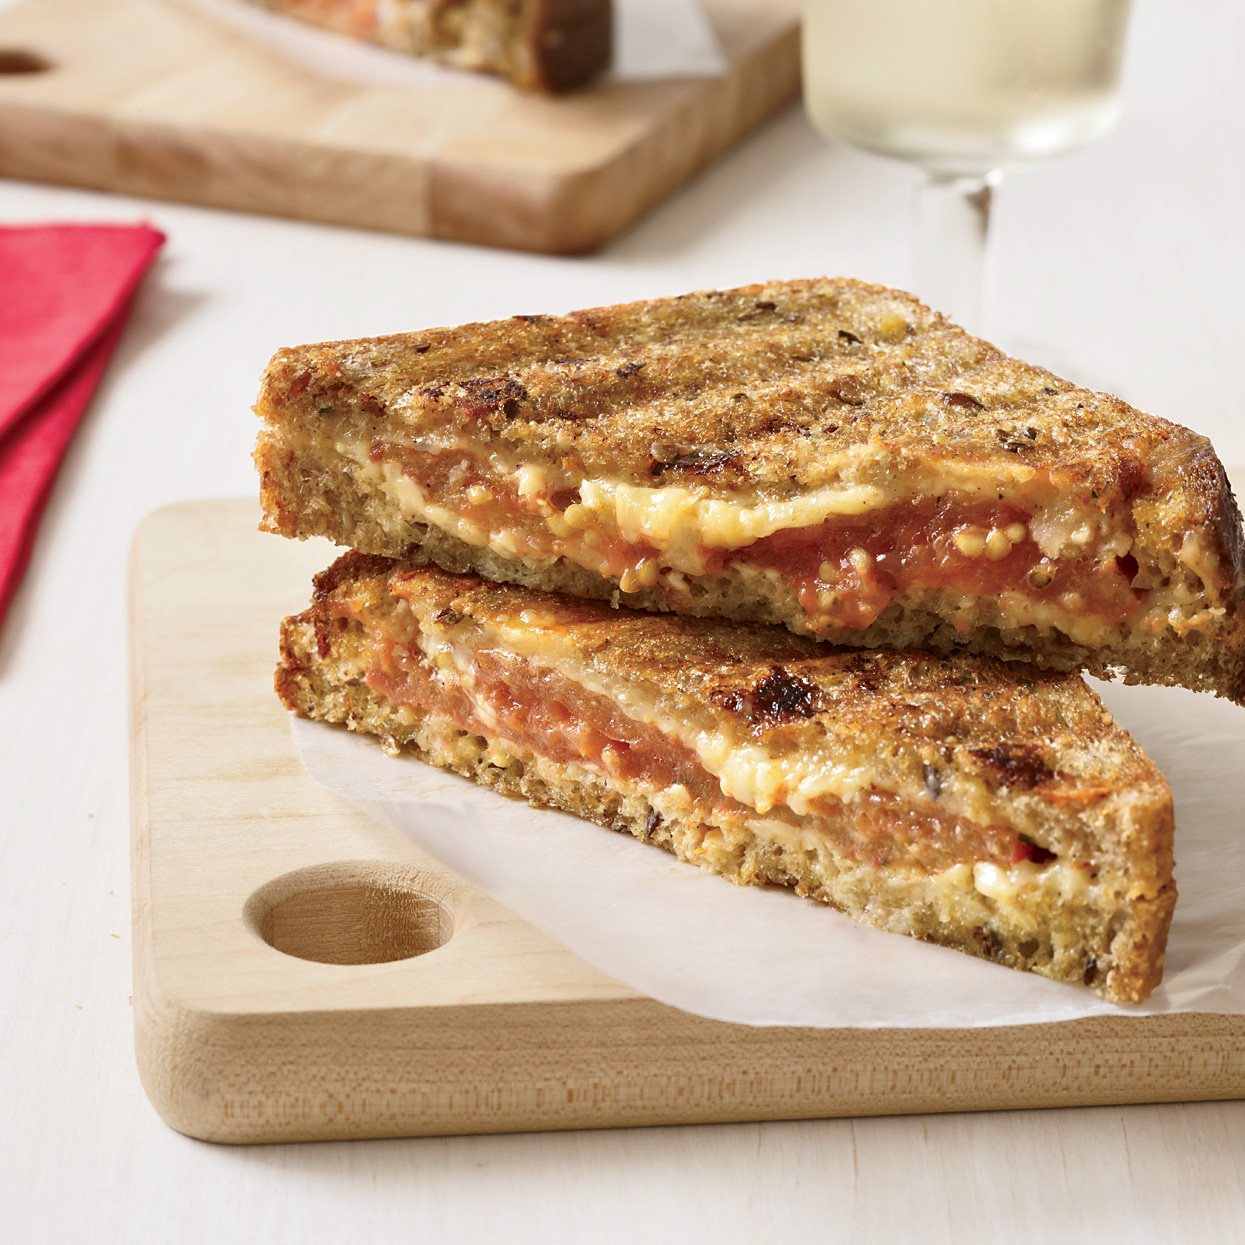 Deliciously Gooey Grilled Cheese Sandwiches